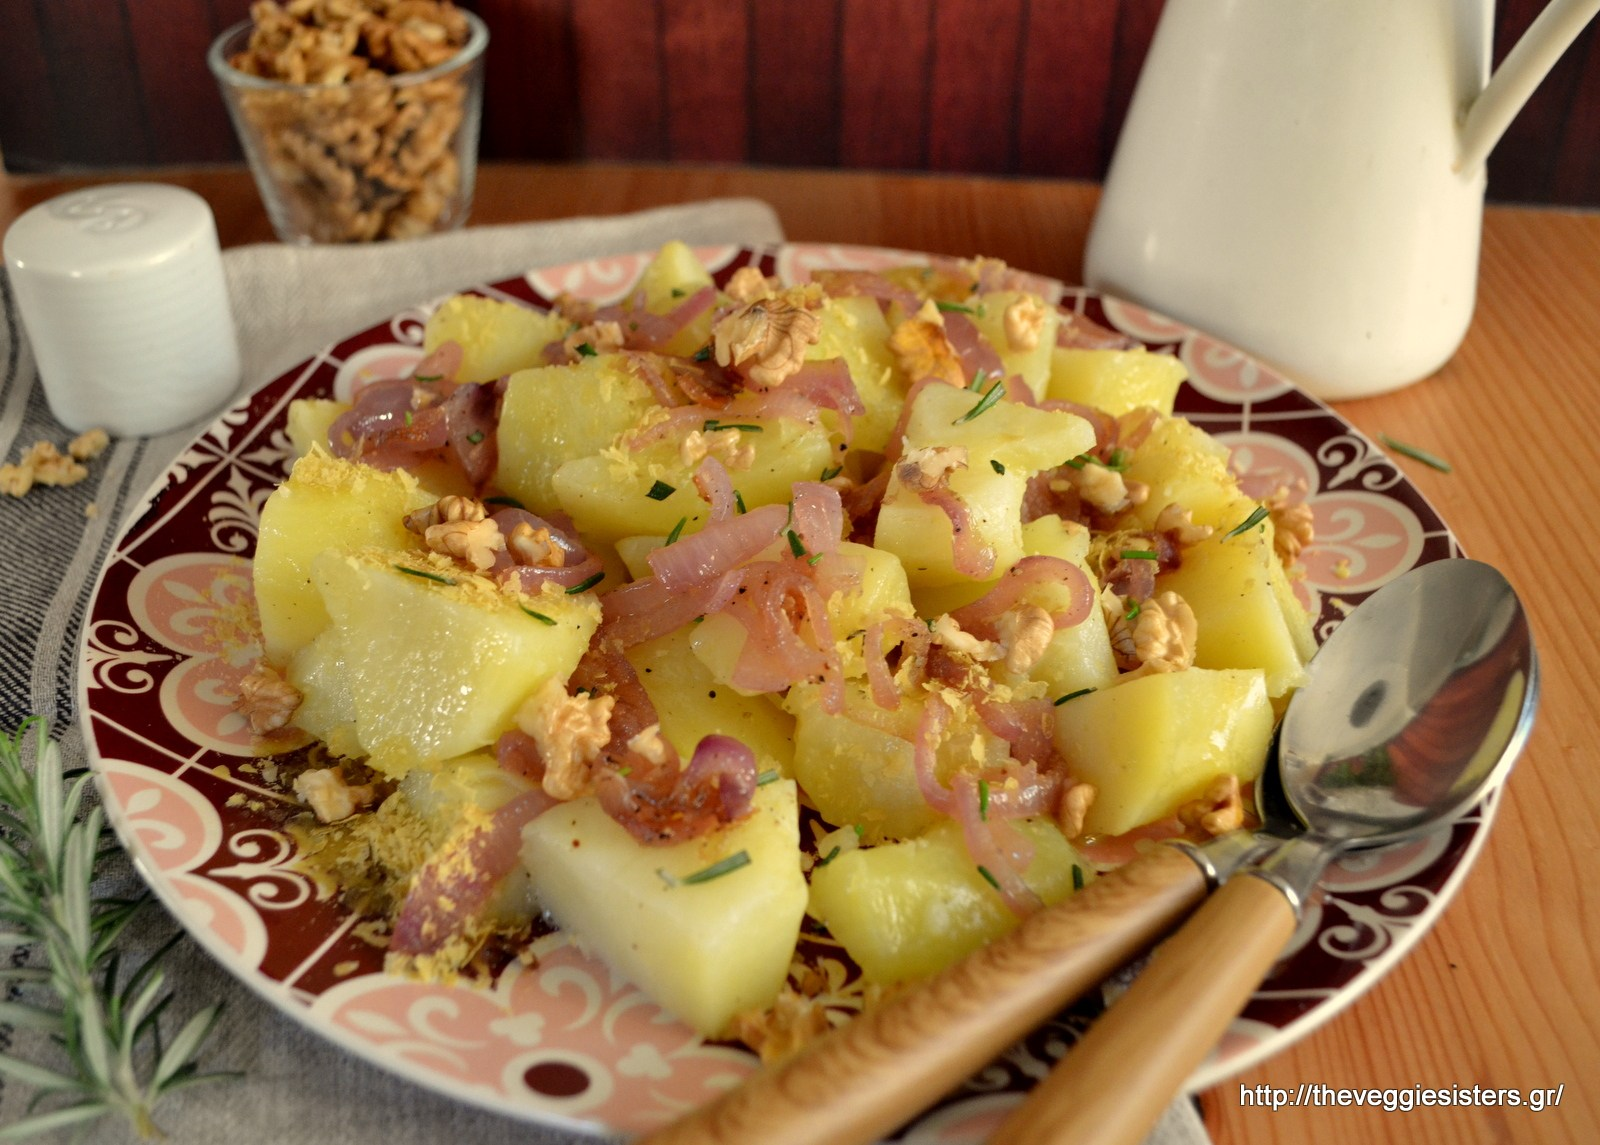 Potato salad with caramelized onions and walnut